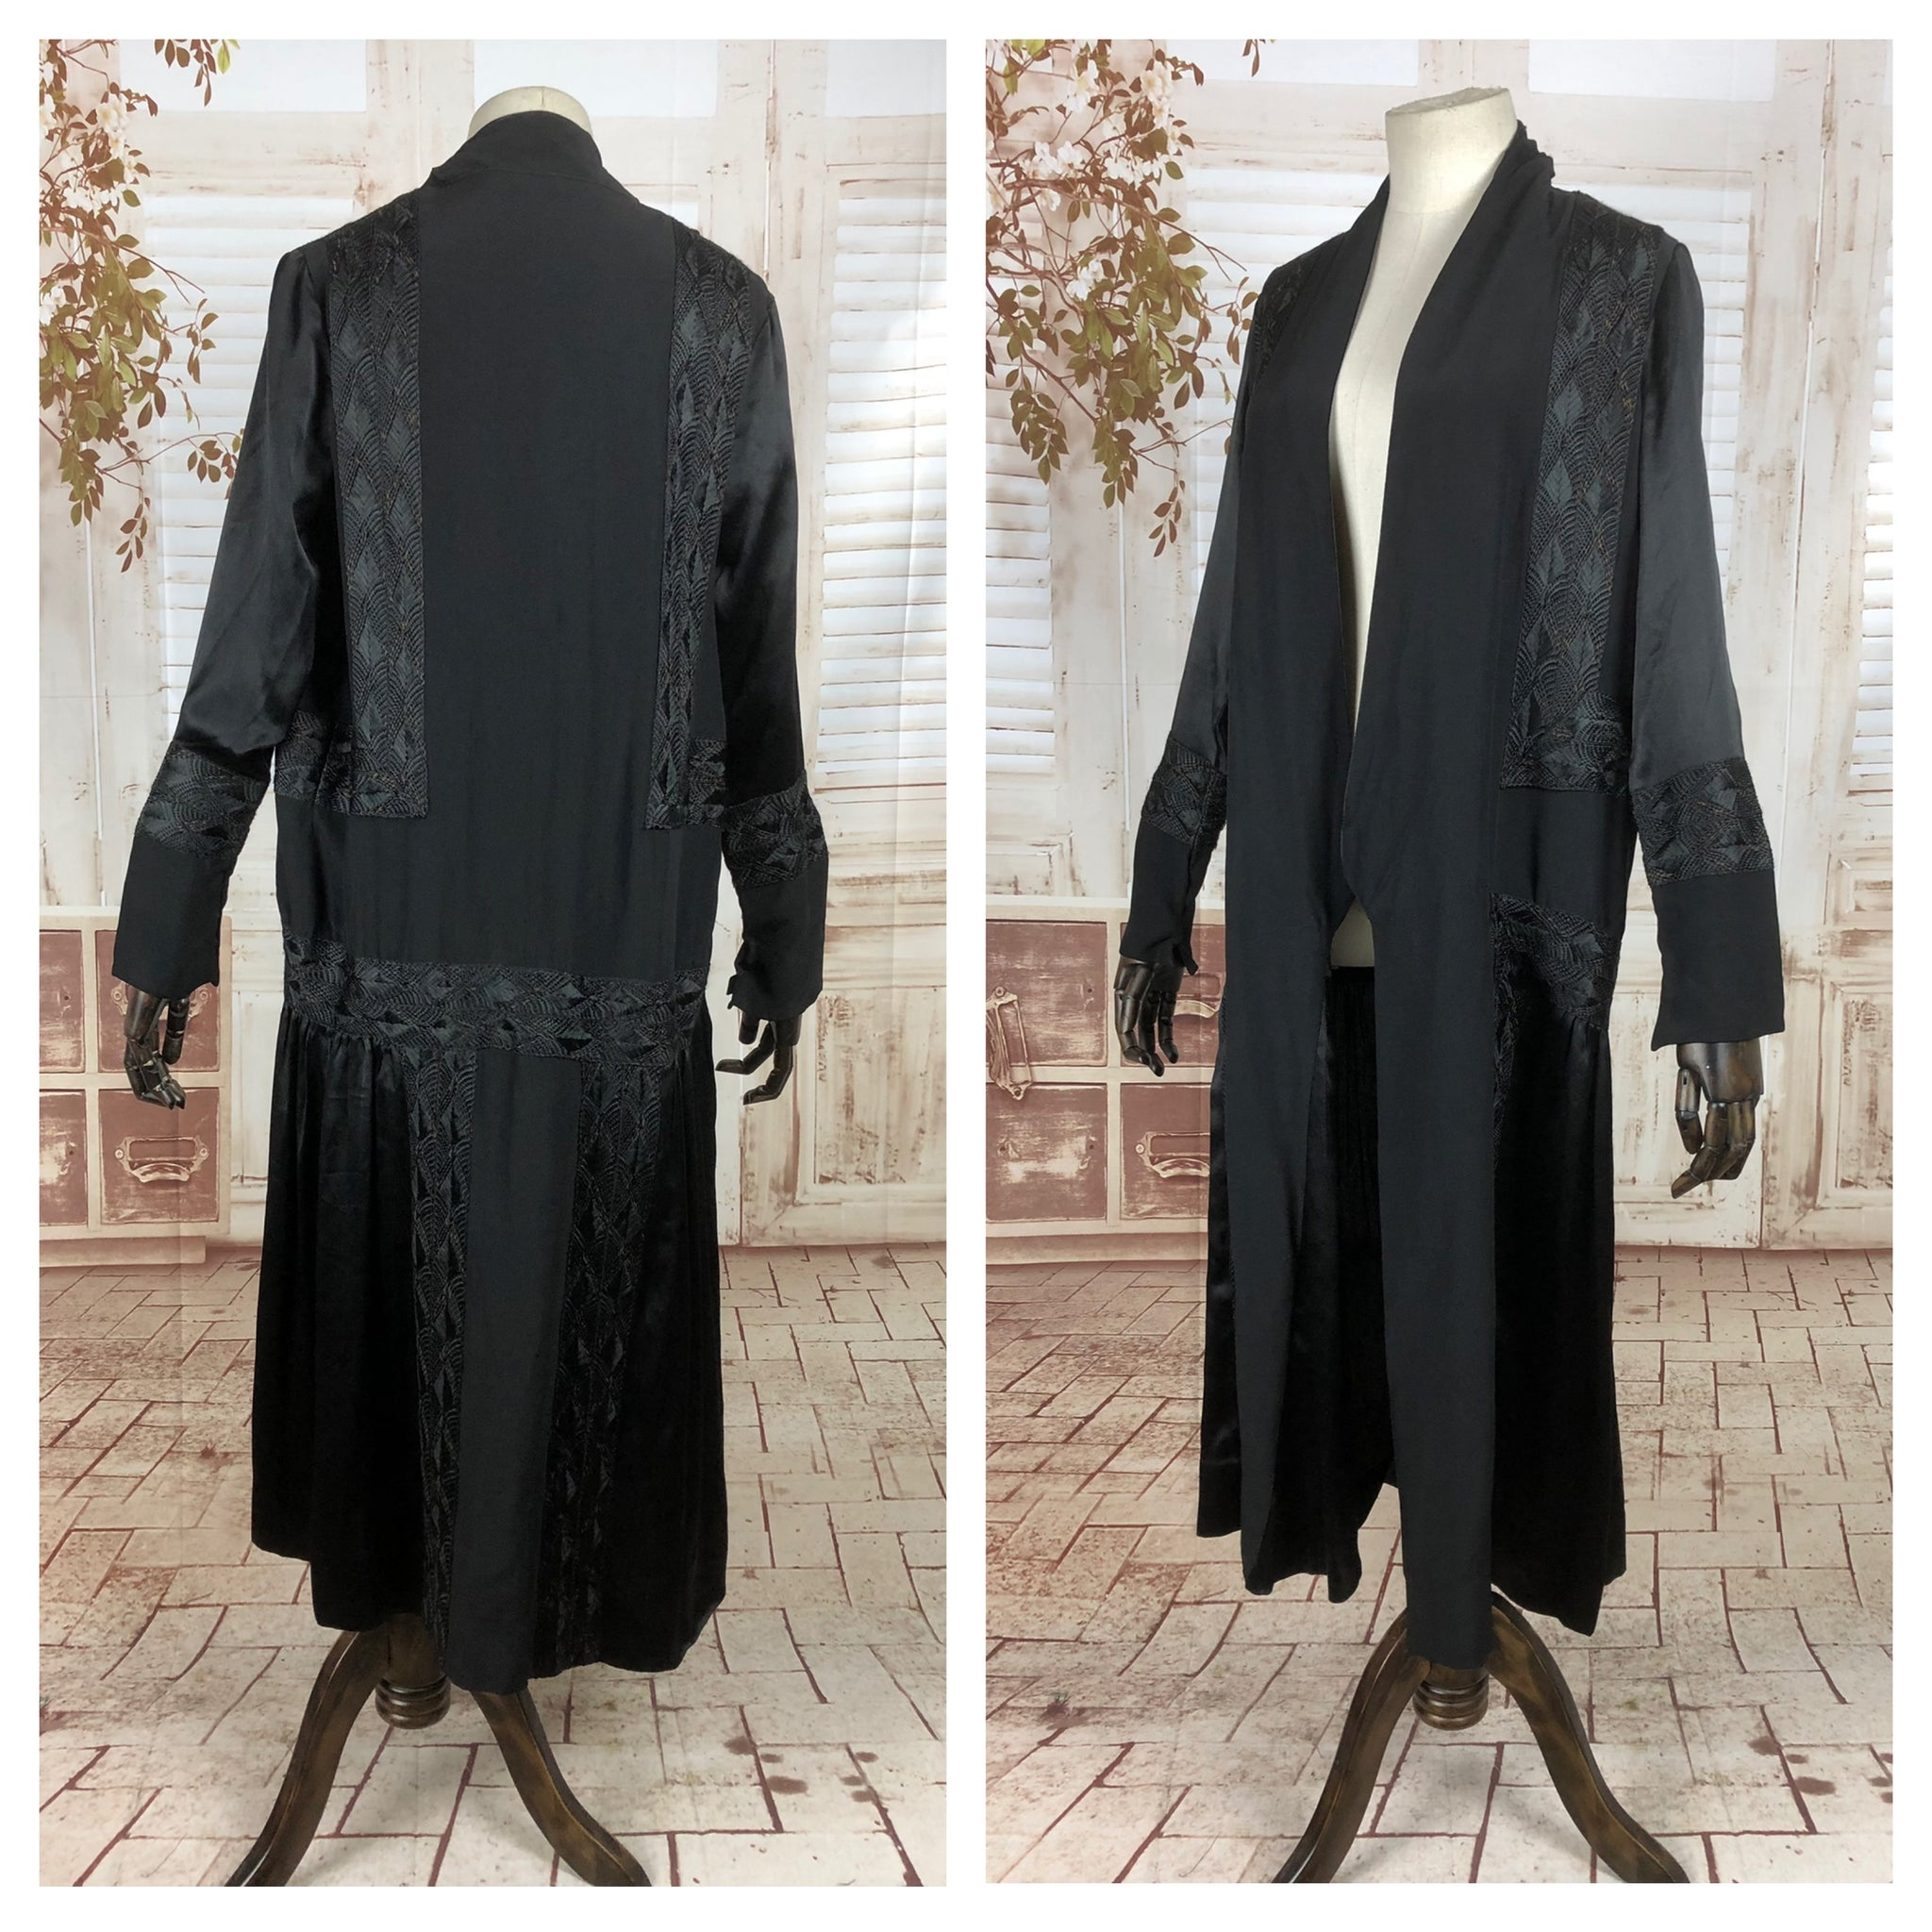 Original 1920s 20s Vintage Art Deco Black Braid Work Flapper Coat